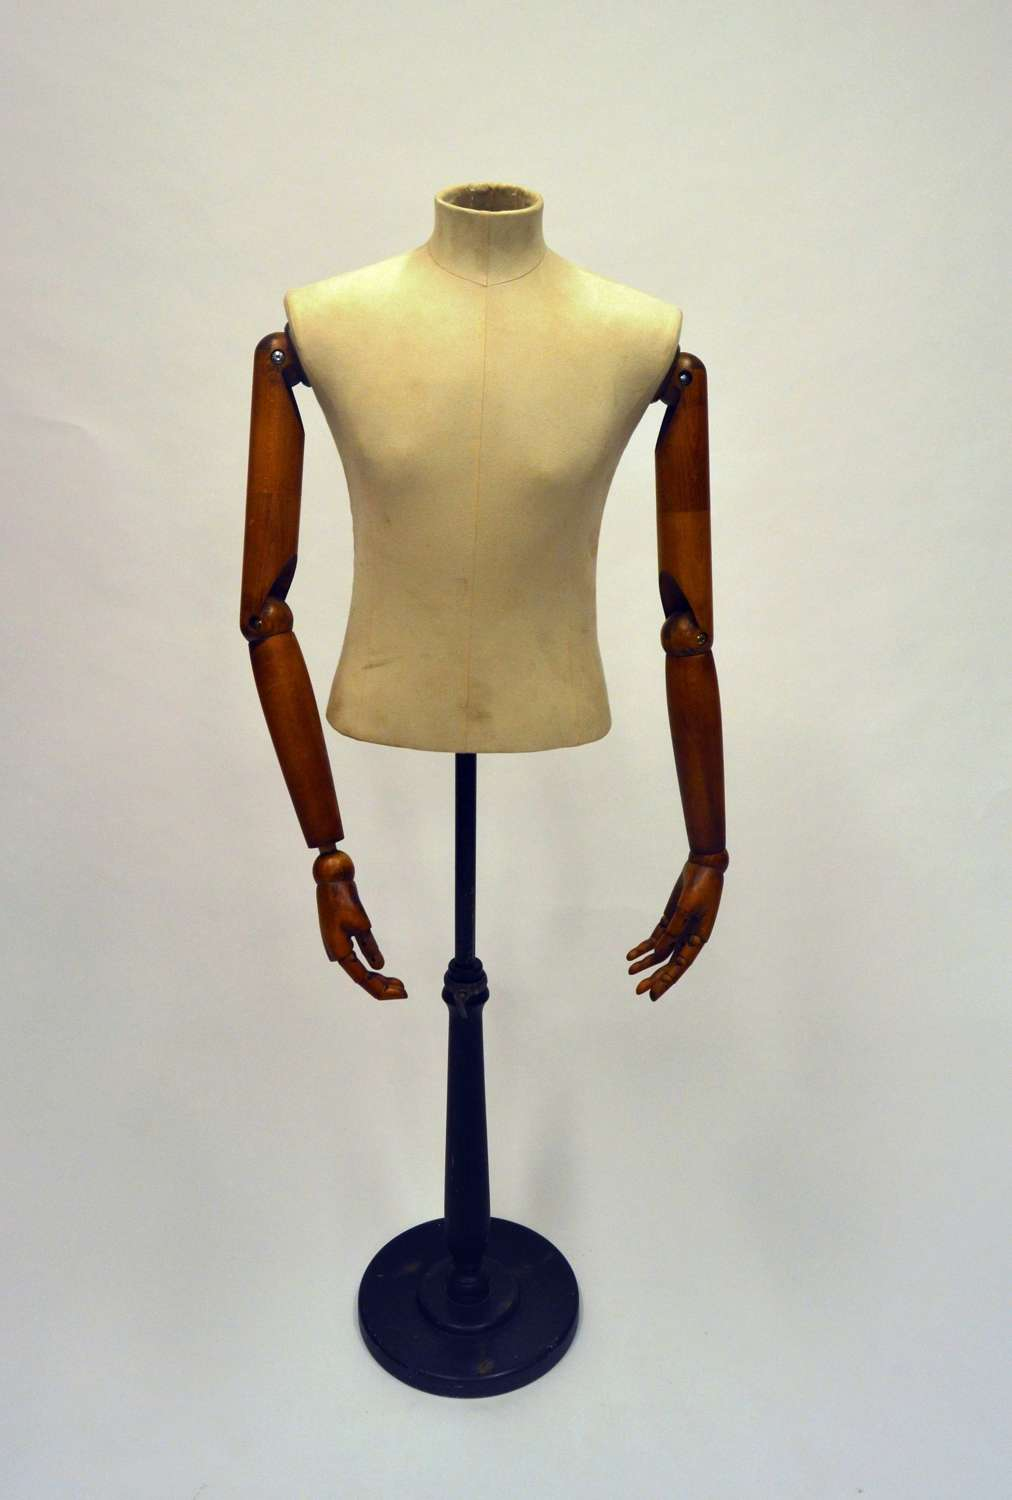 1960s Male Mannequin - Out of Stock